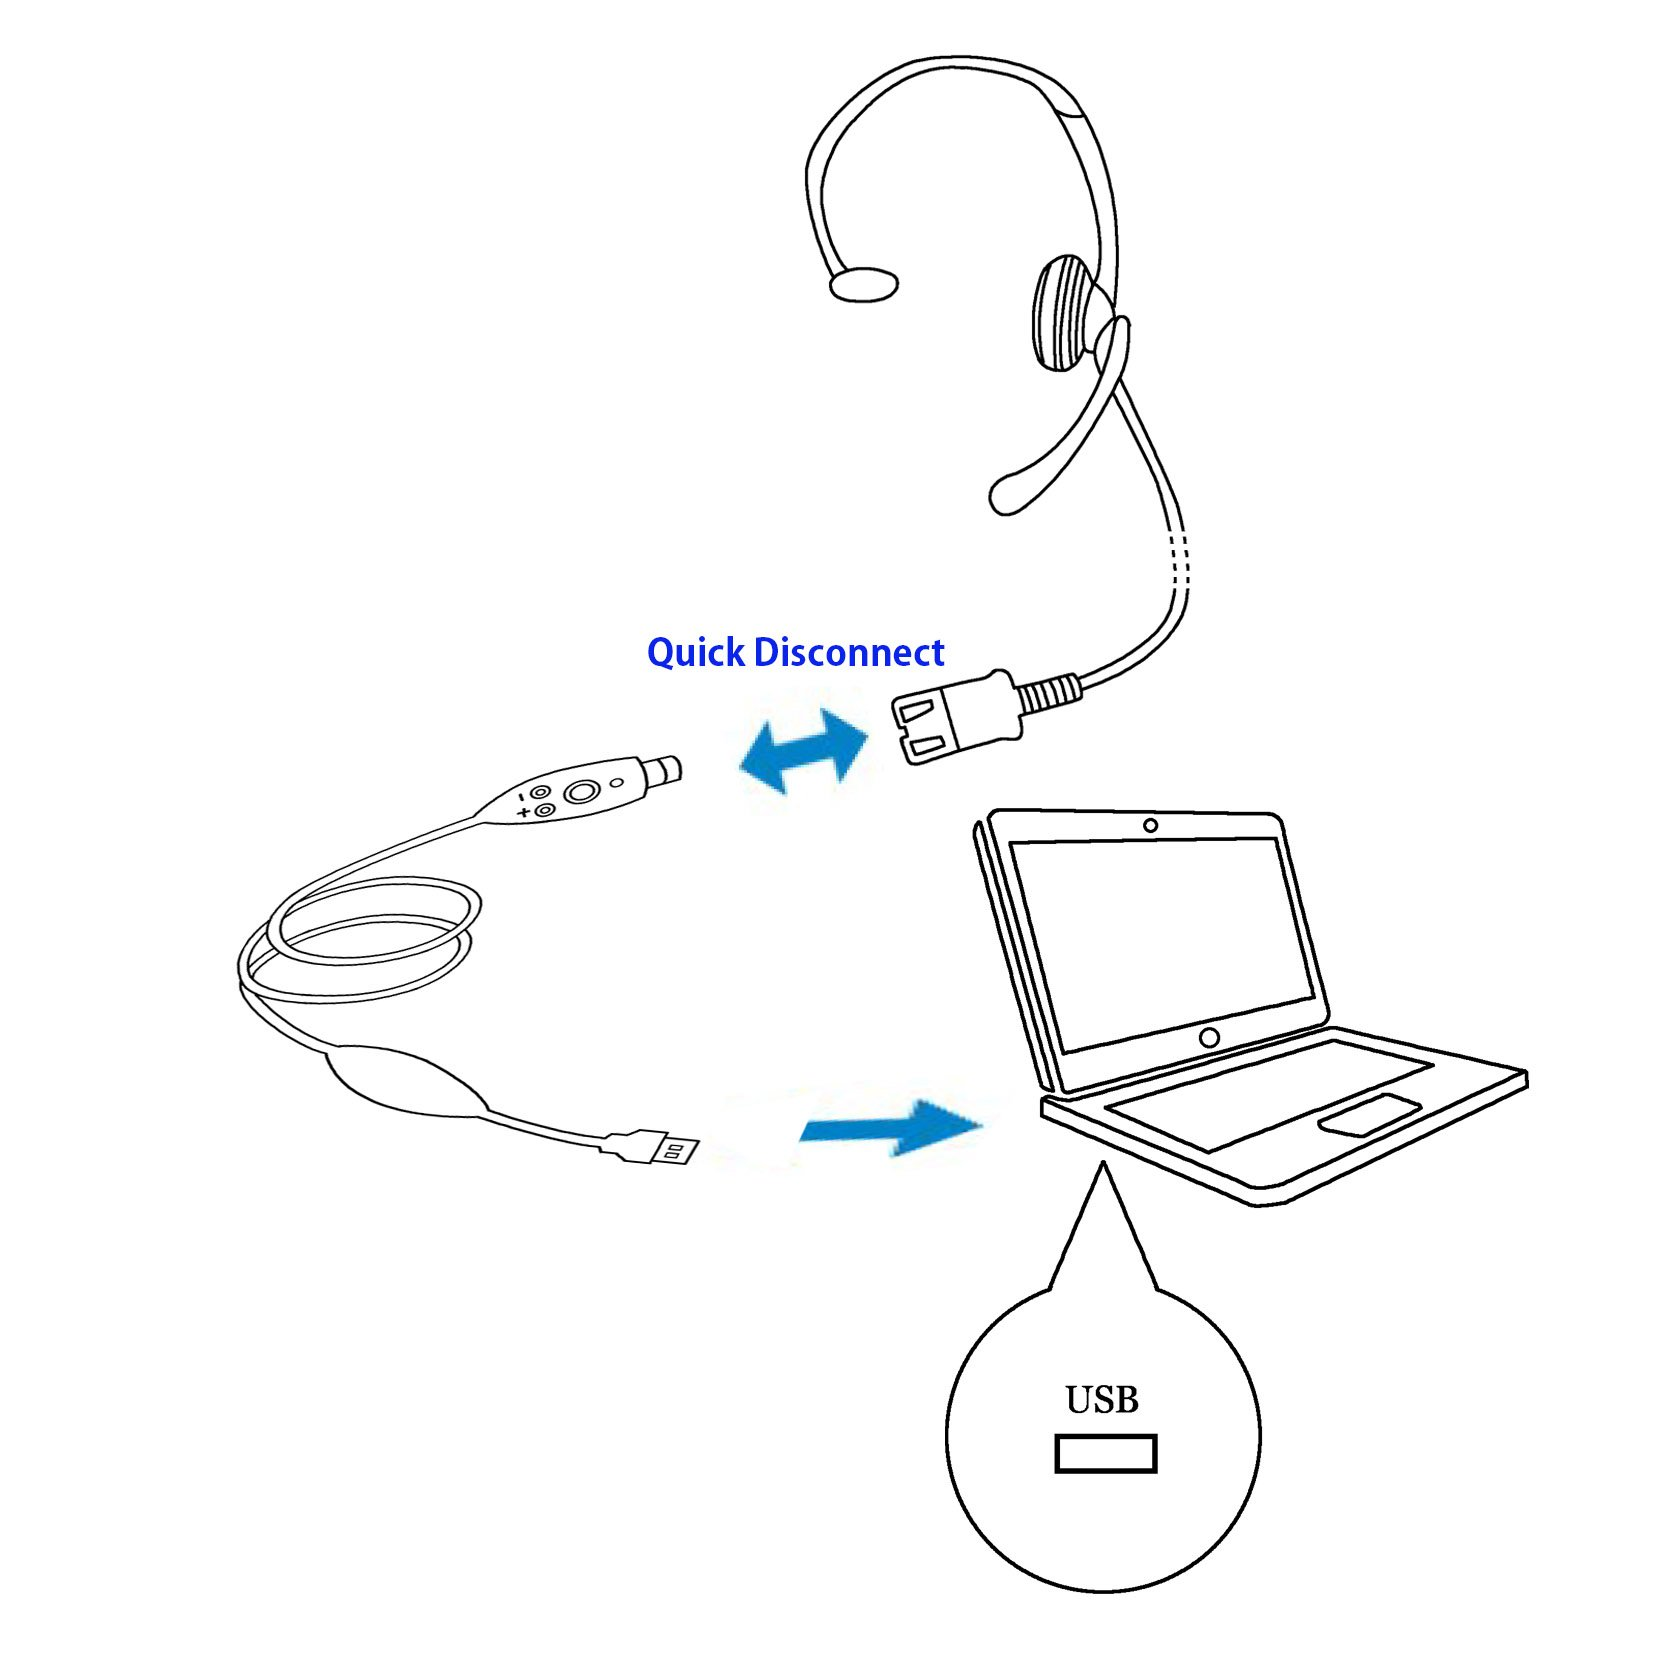 Cost effective USB Computer Headset, Durable Call center headset for VoIP Softphone of MS Lync (Skype for Business), Cisco Jabber by InnoTalk (Image #2)